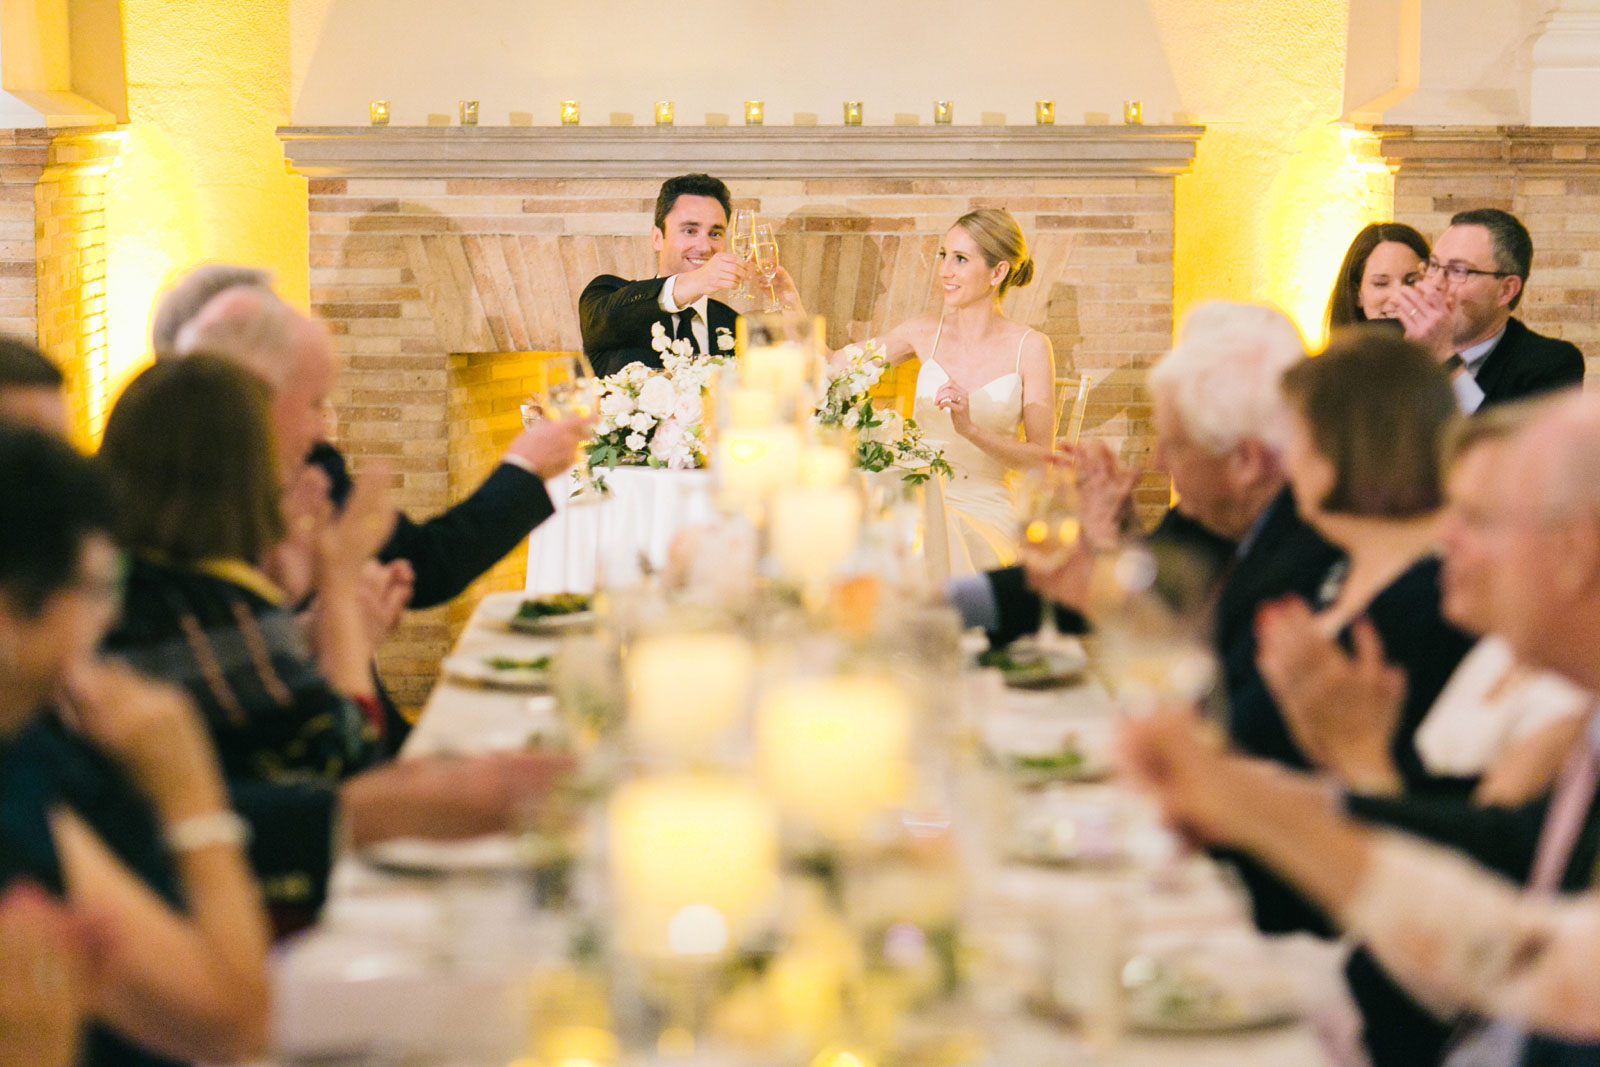 bride and groom toast with champagne at their sweetheart table at elegant wedding reception at BPL